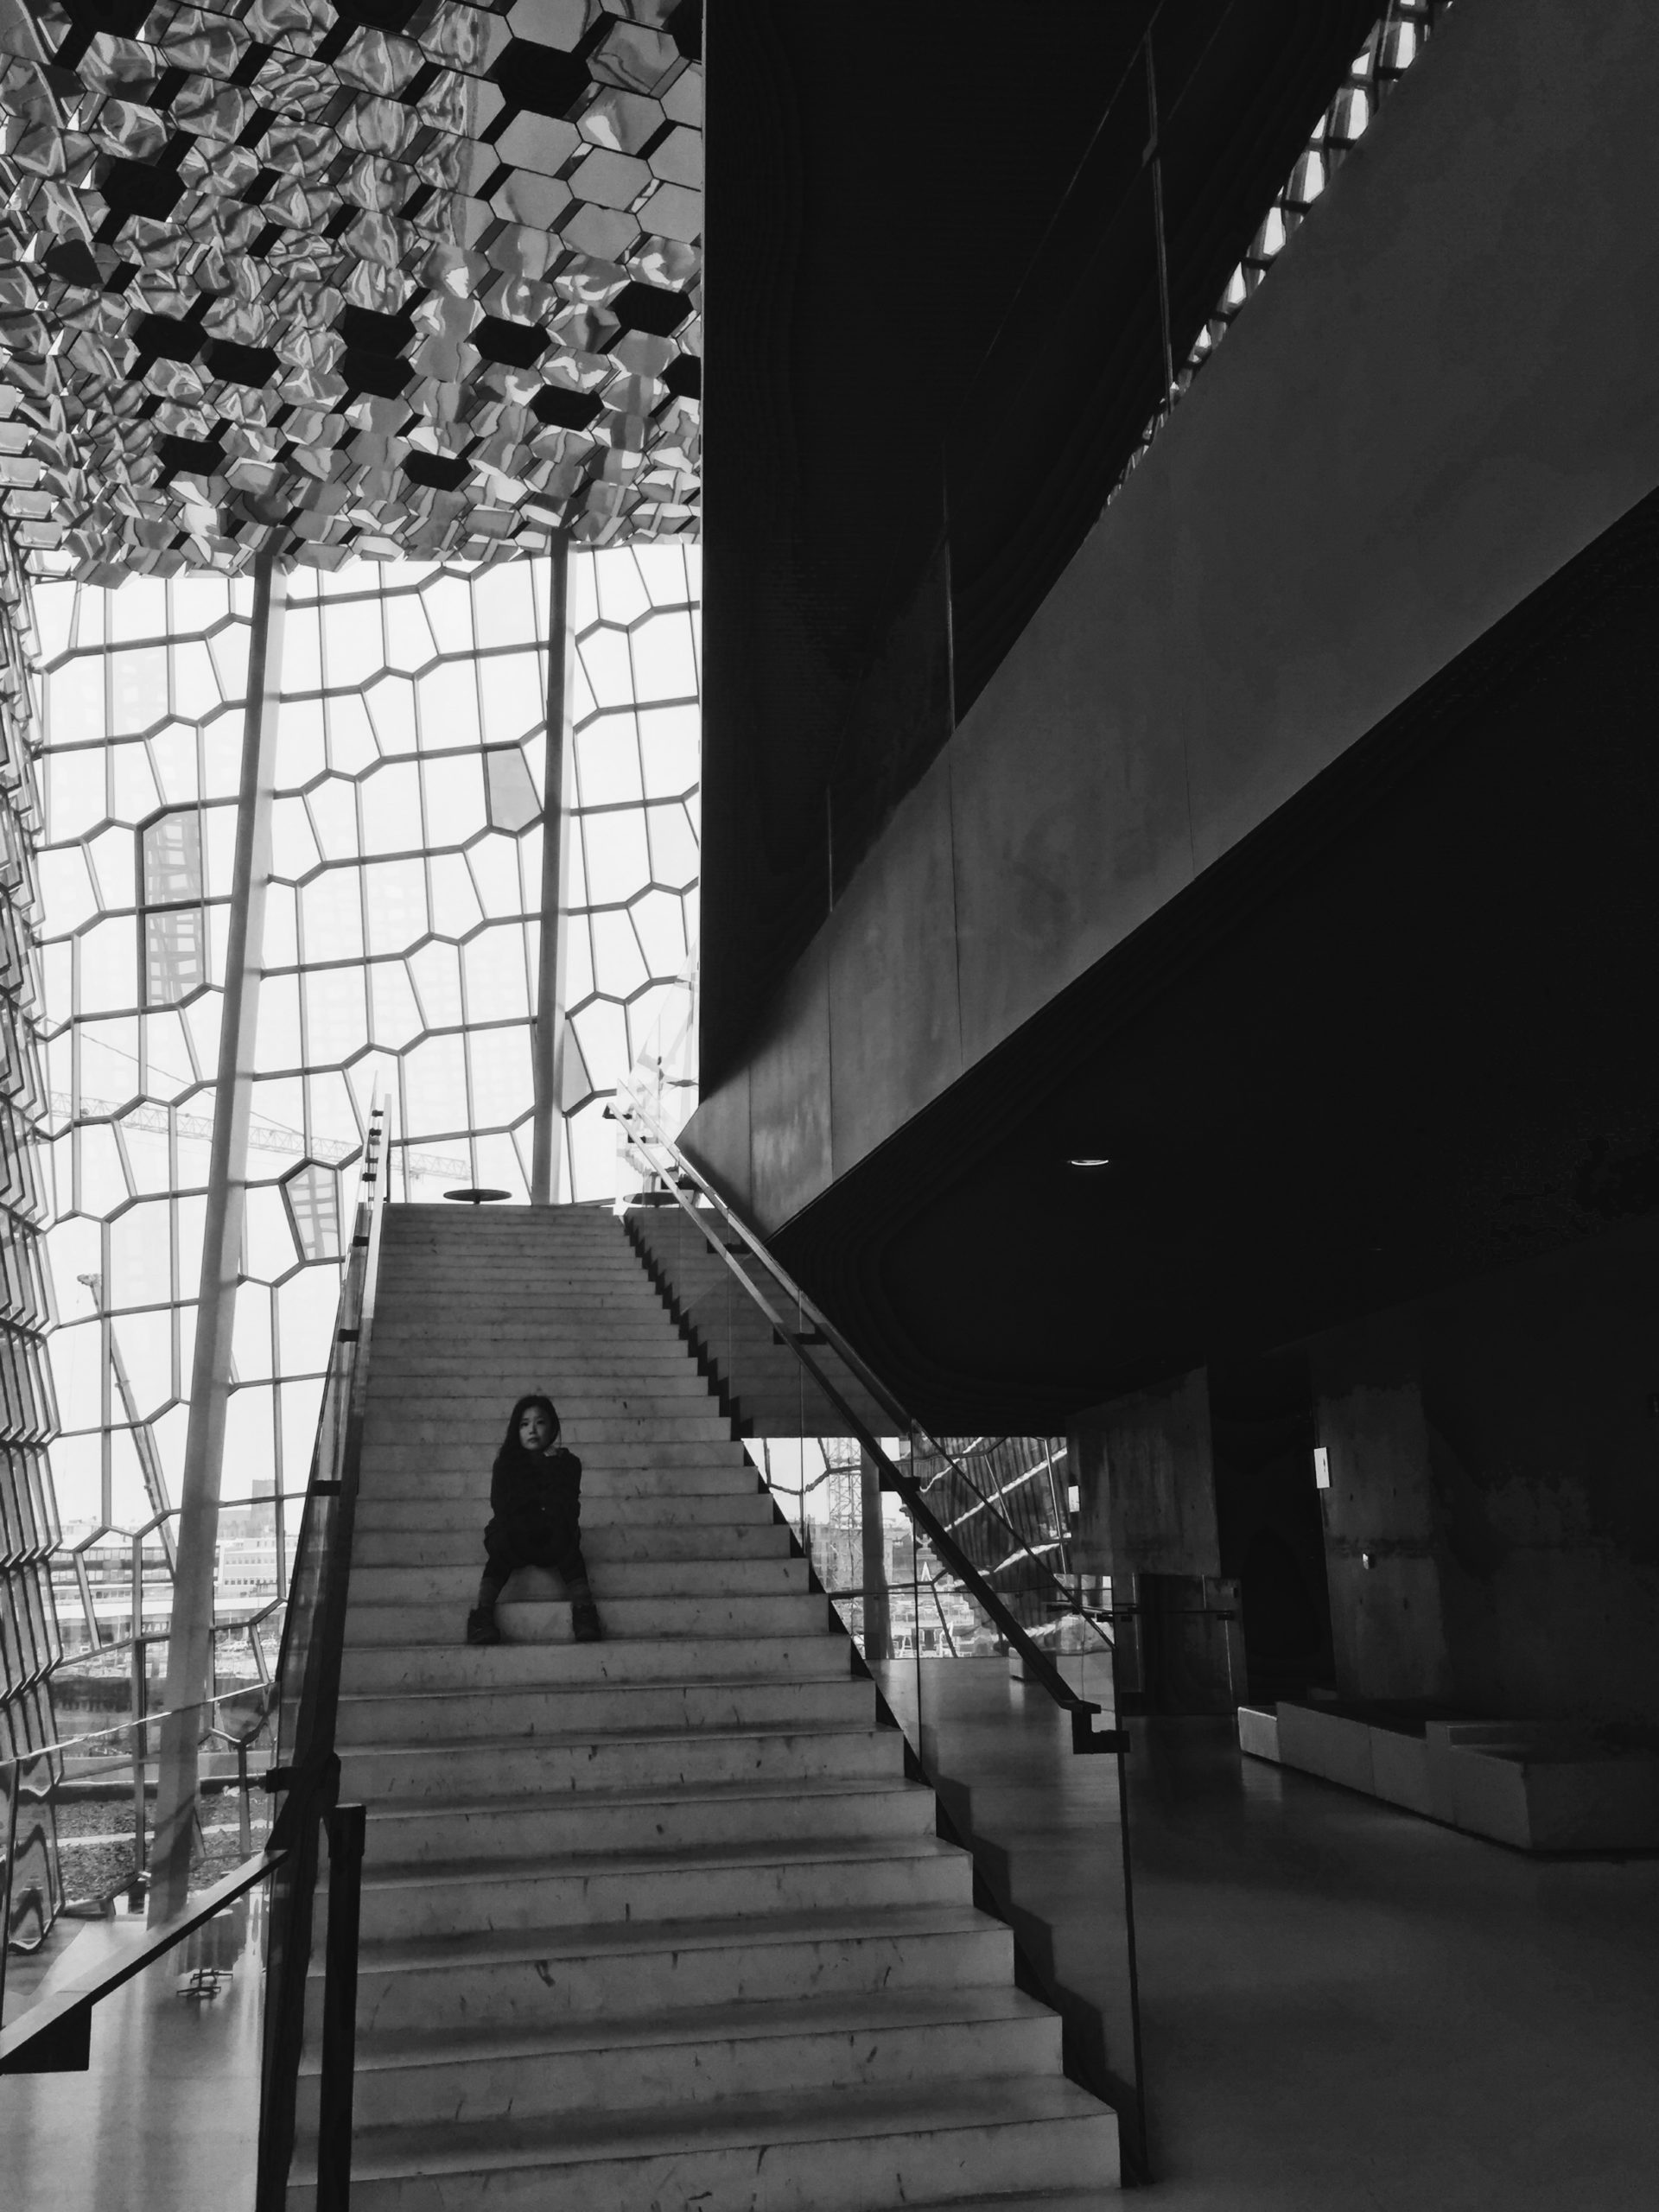 Photos: Harpa Concert Hall second floor - Travel to Iceland